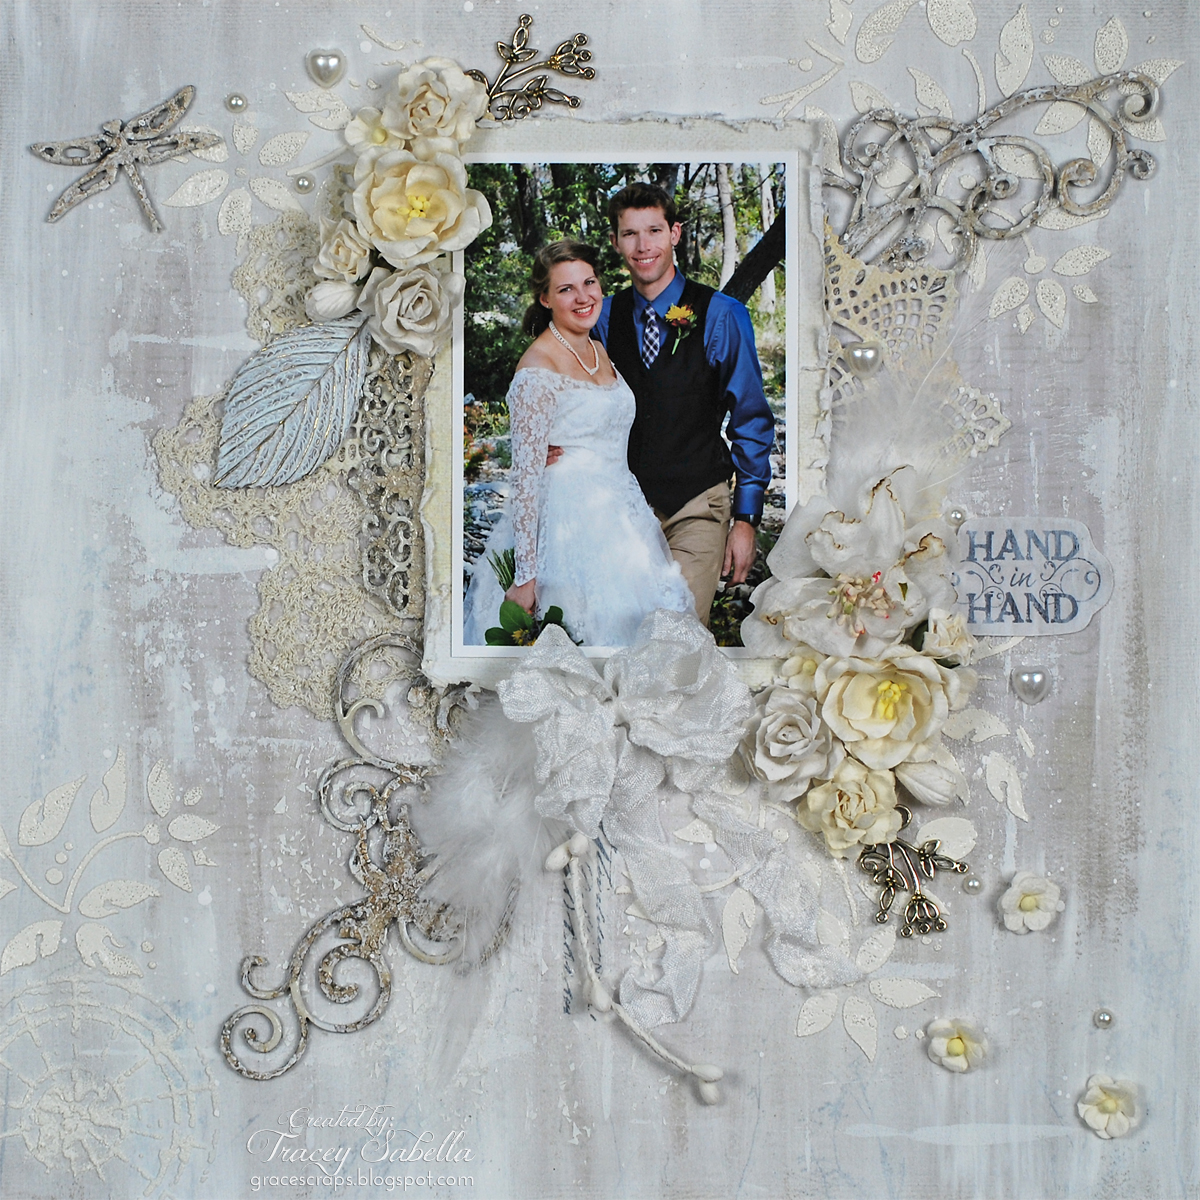 Mixed Media, Tracey Sabella, Leaky Shed Studio, Wild Orchid Crafts, Wedding, Chipboard